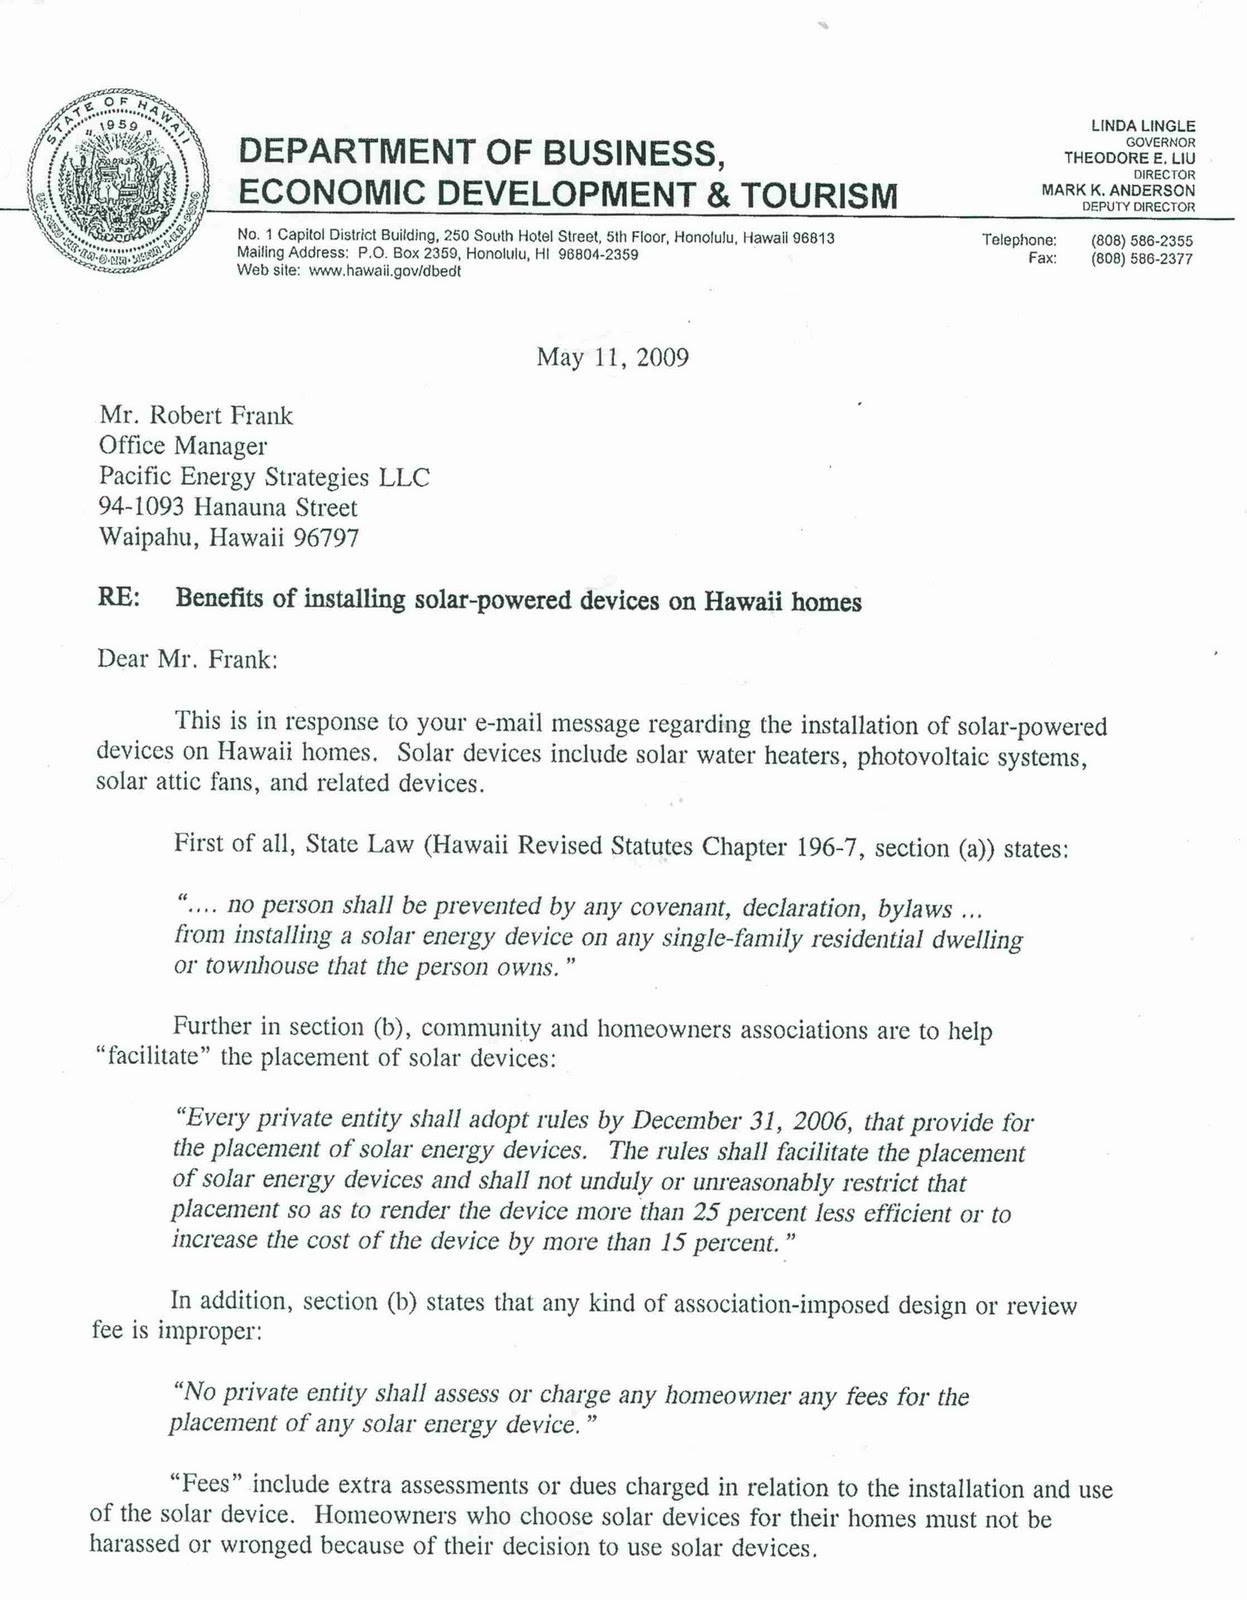 PACIFIC ENERGY STRATEGIES LLC Letter from Hawaii State